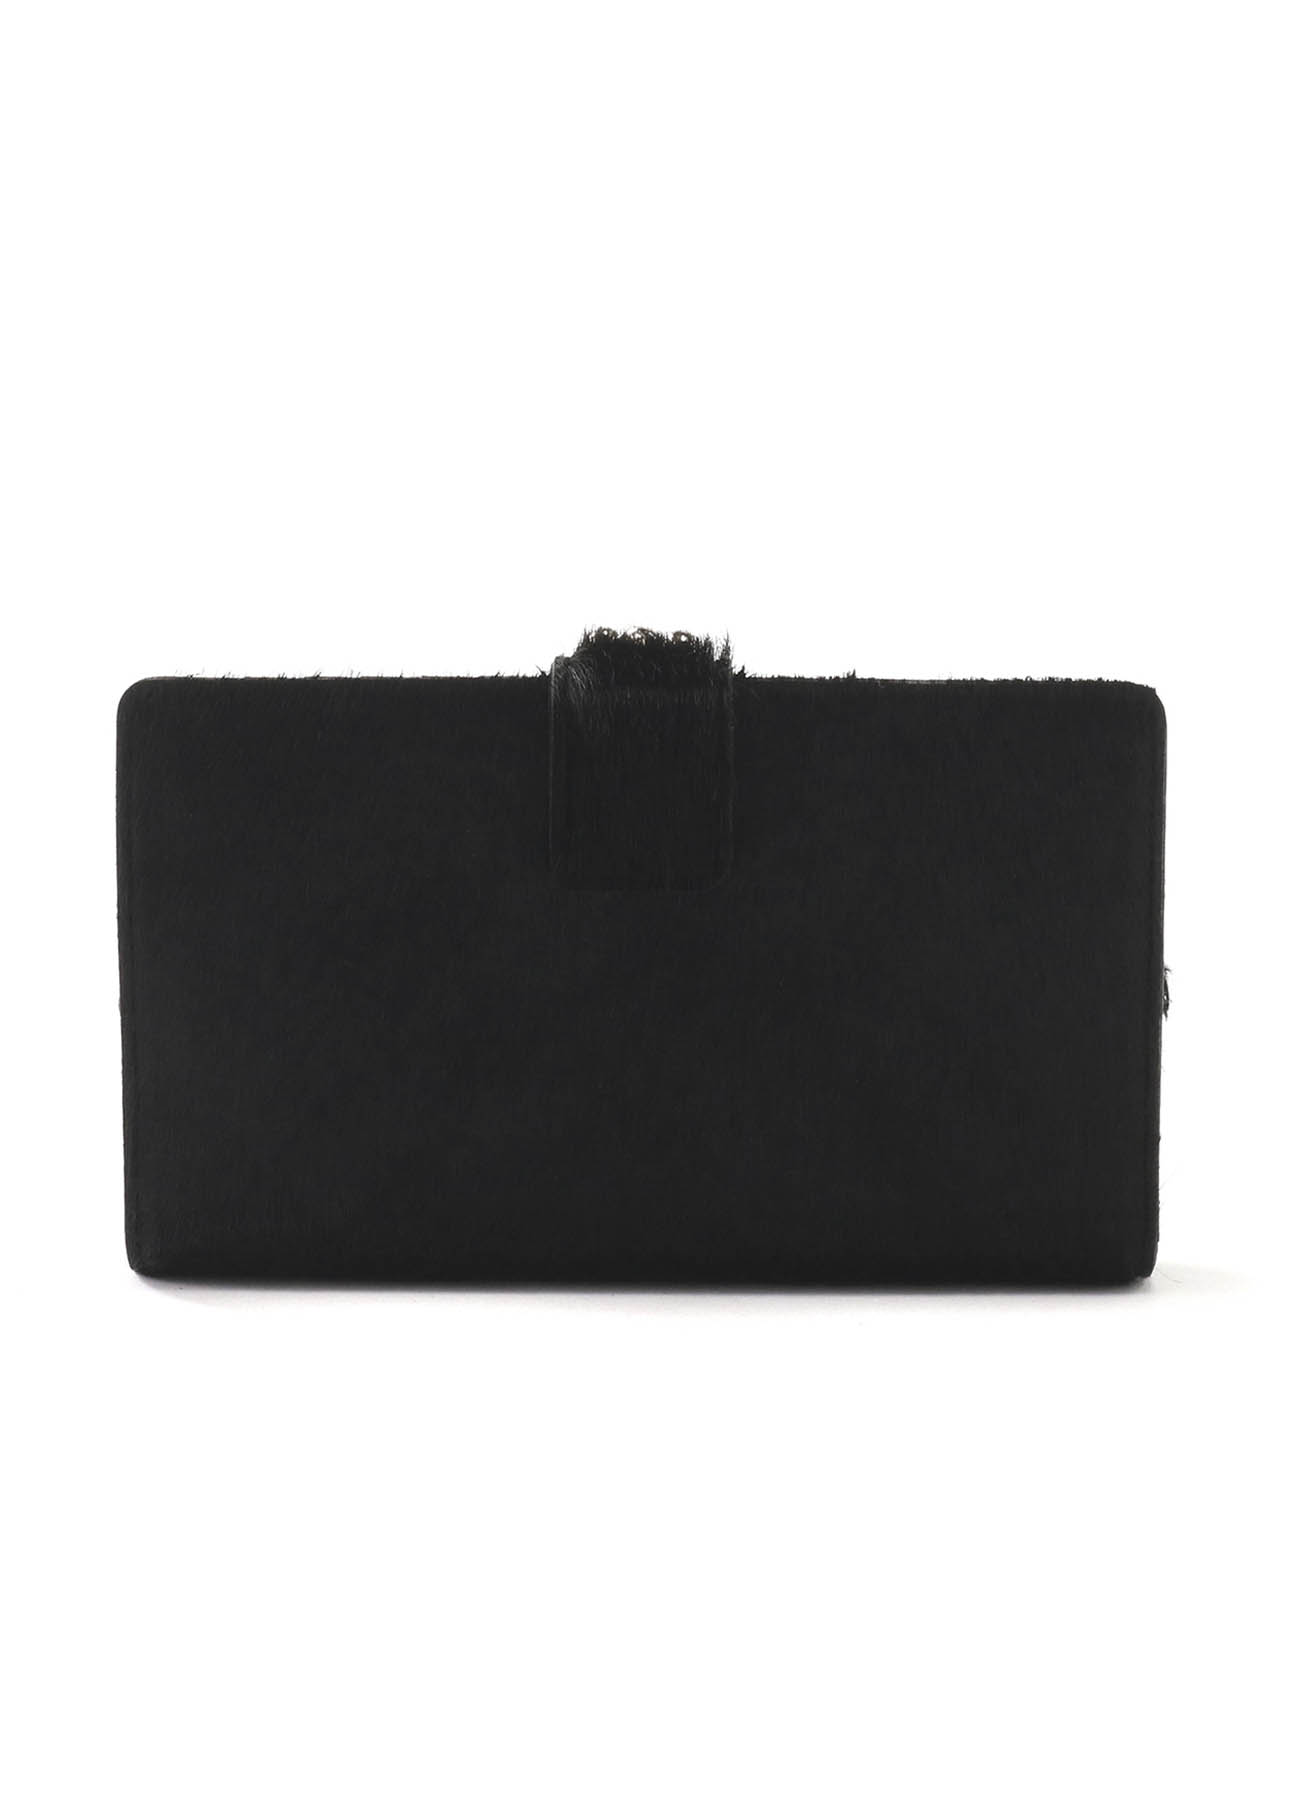 HORSE LEATHER BASIC CLASP LONG WALLET